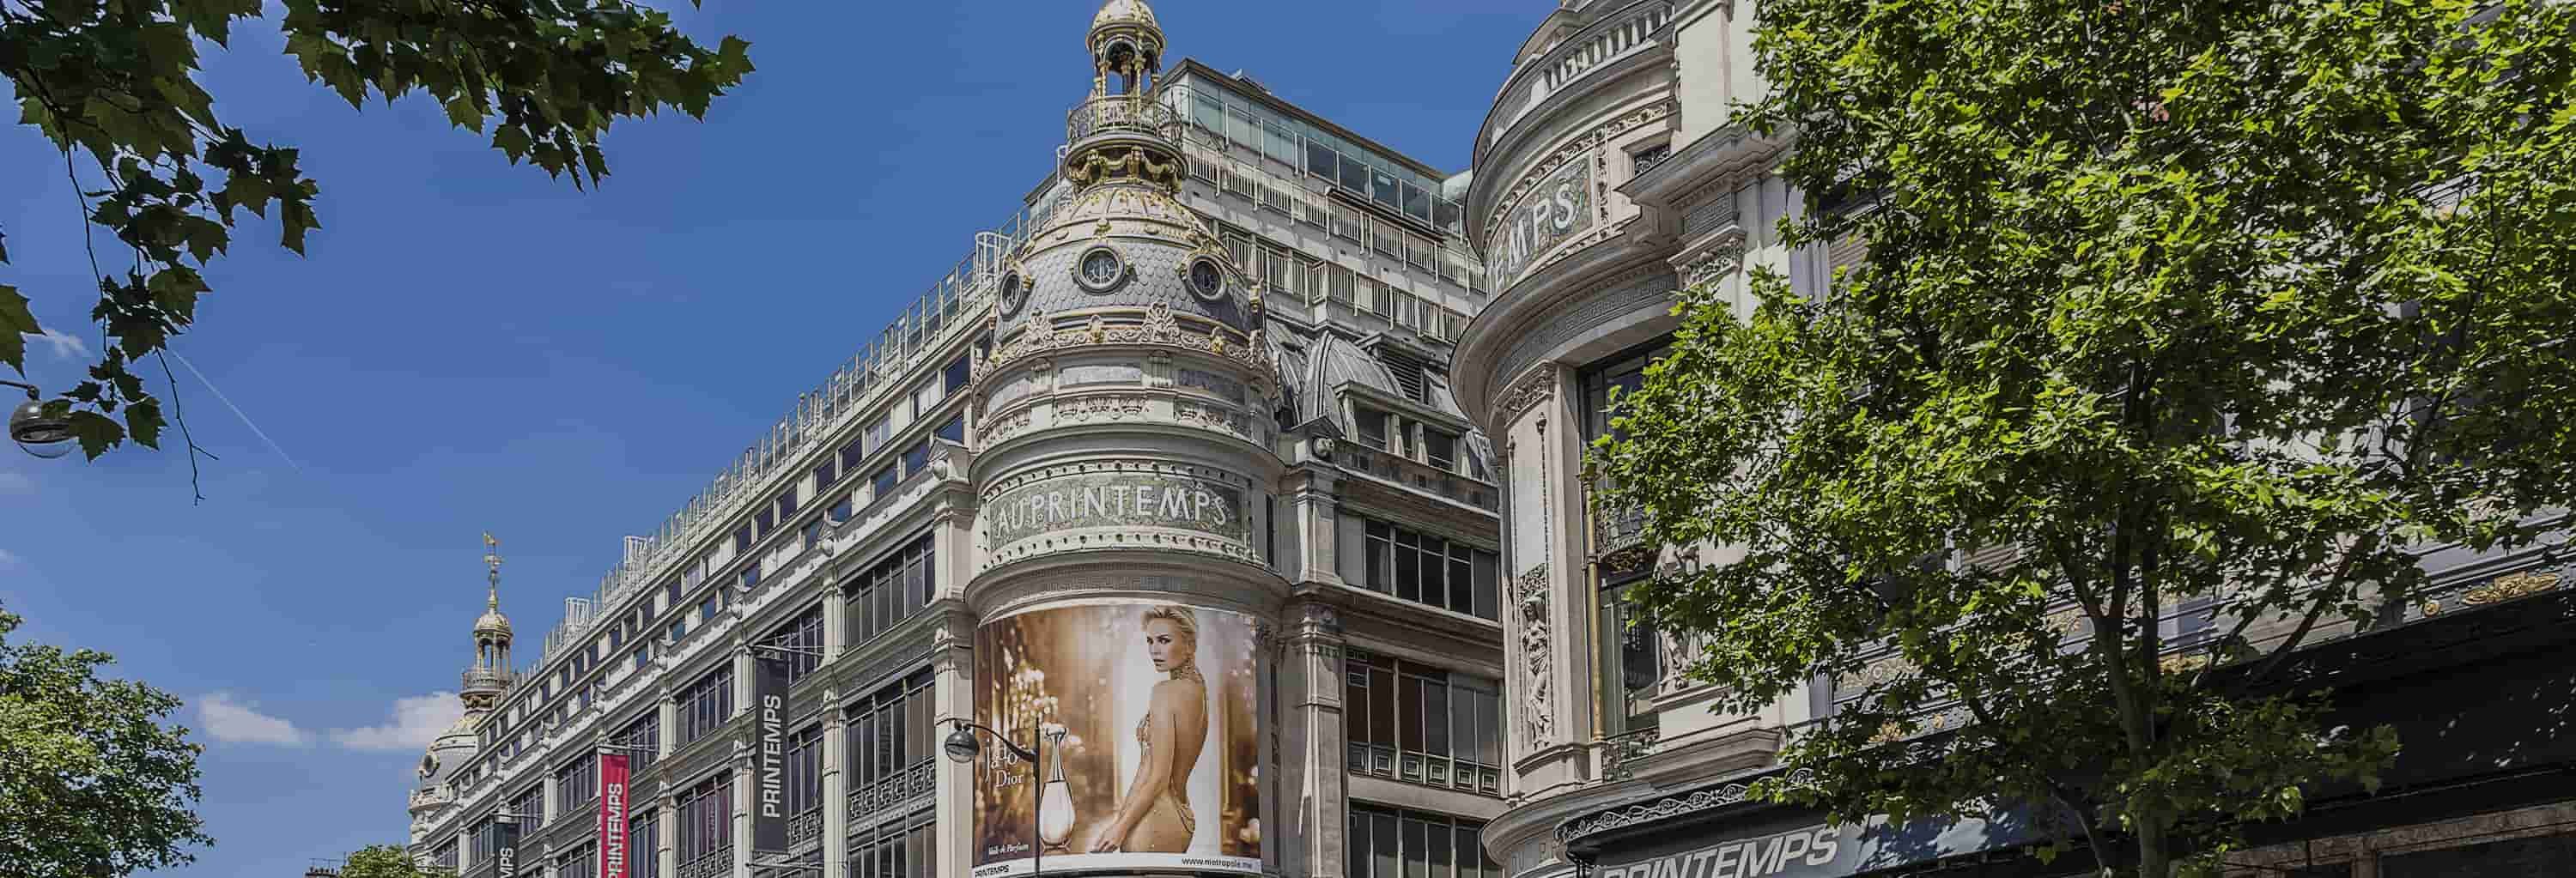 Printemps Haussmann Guided Tour